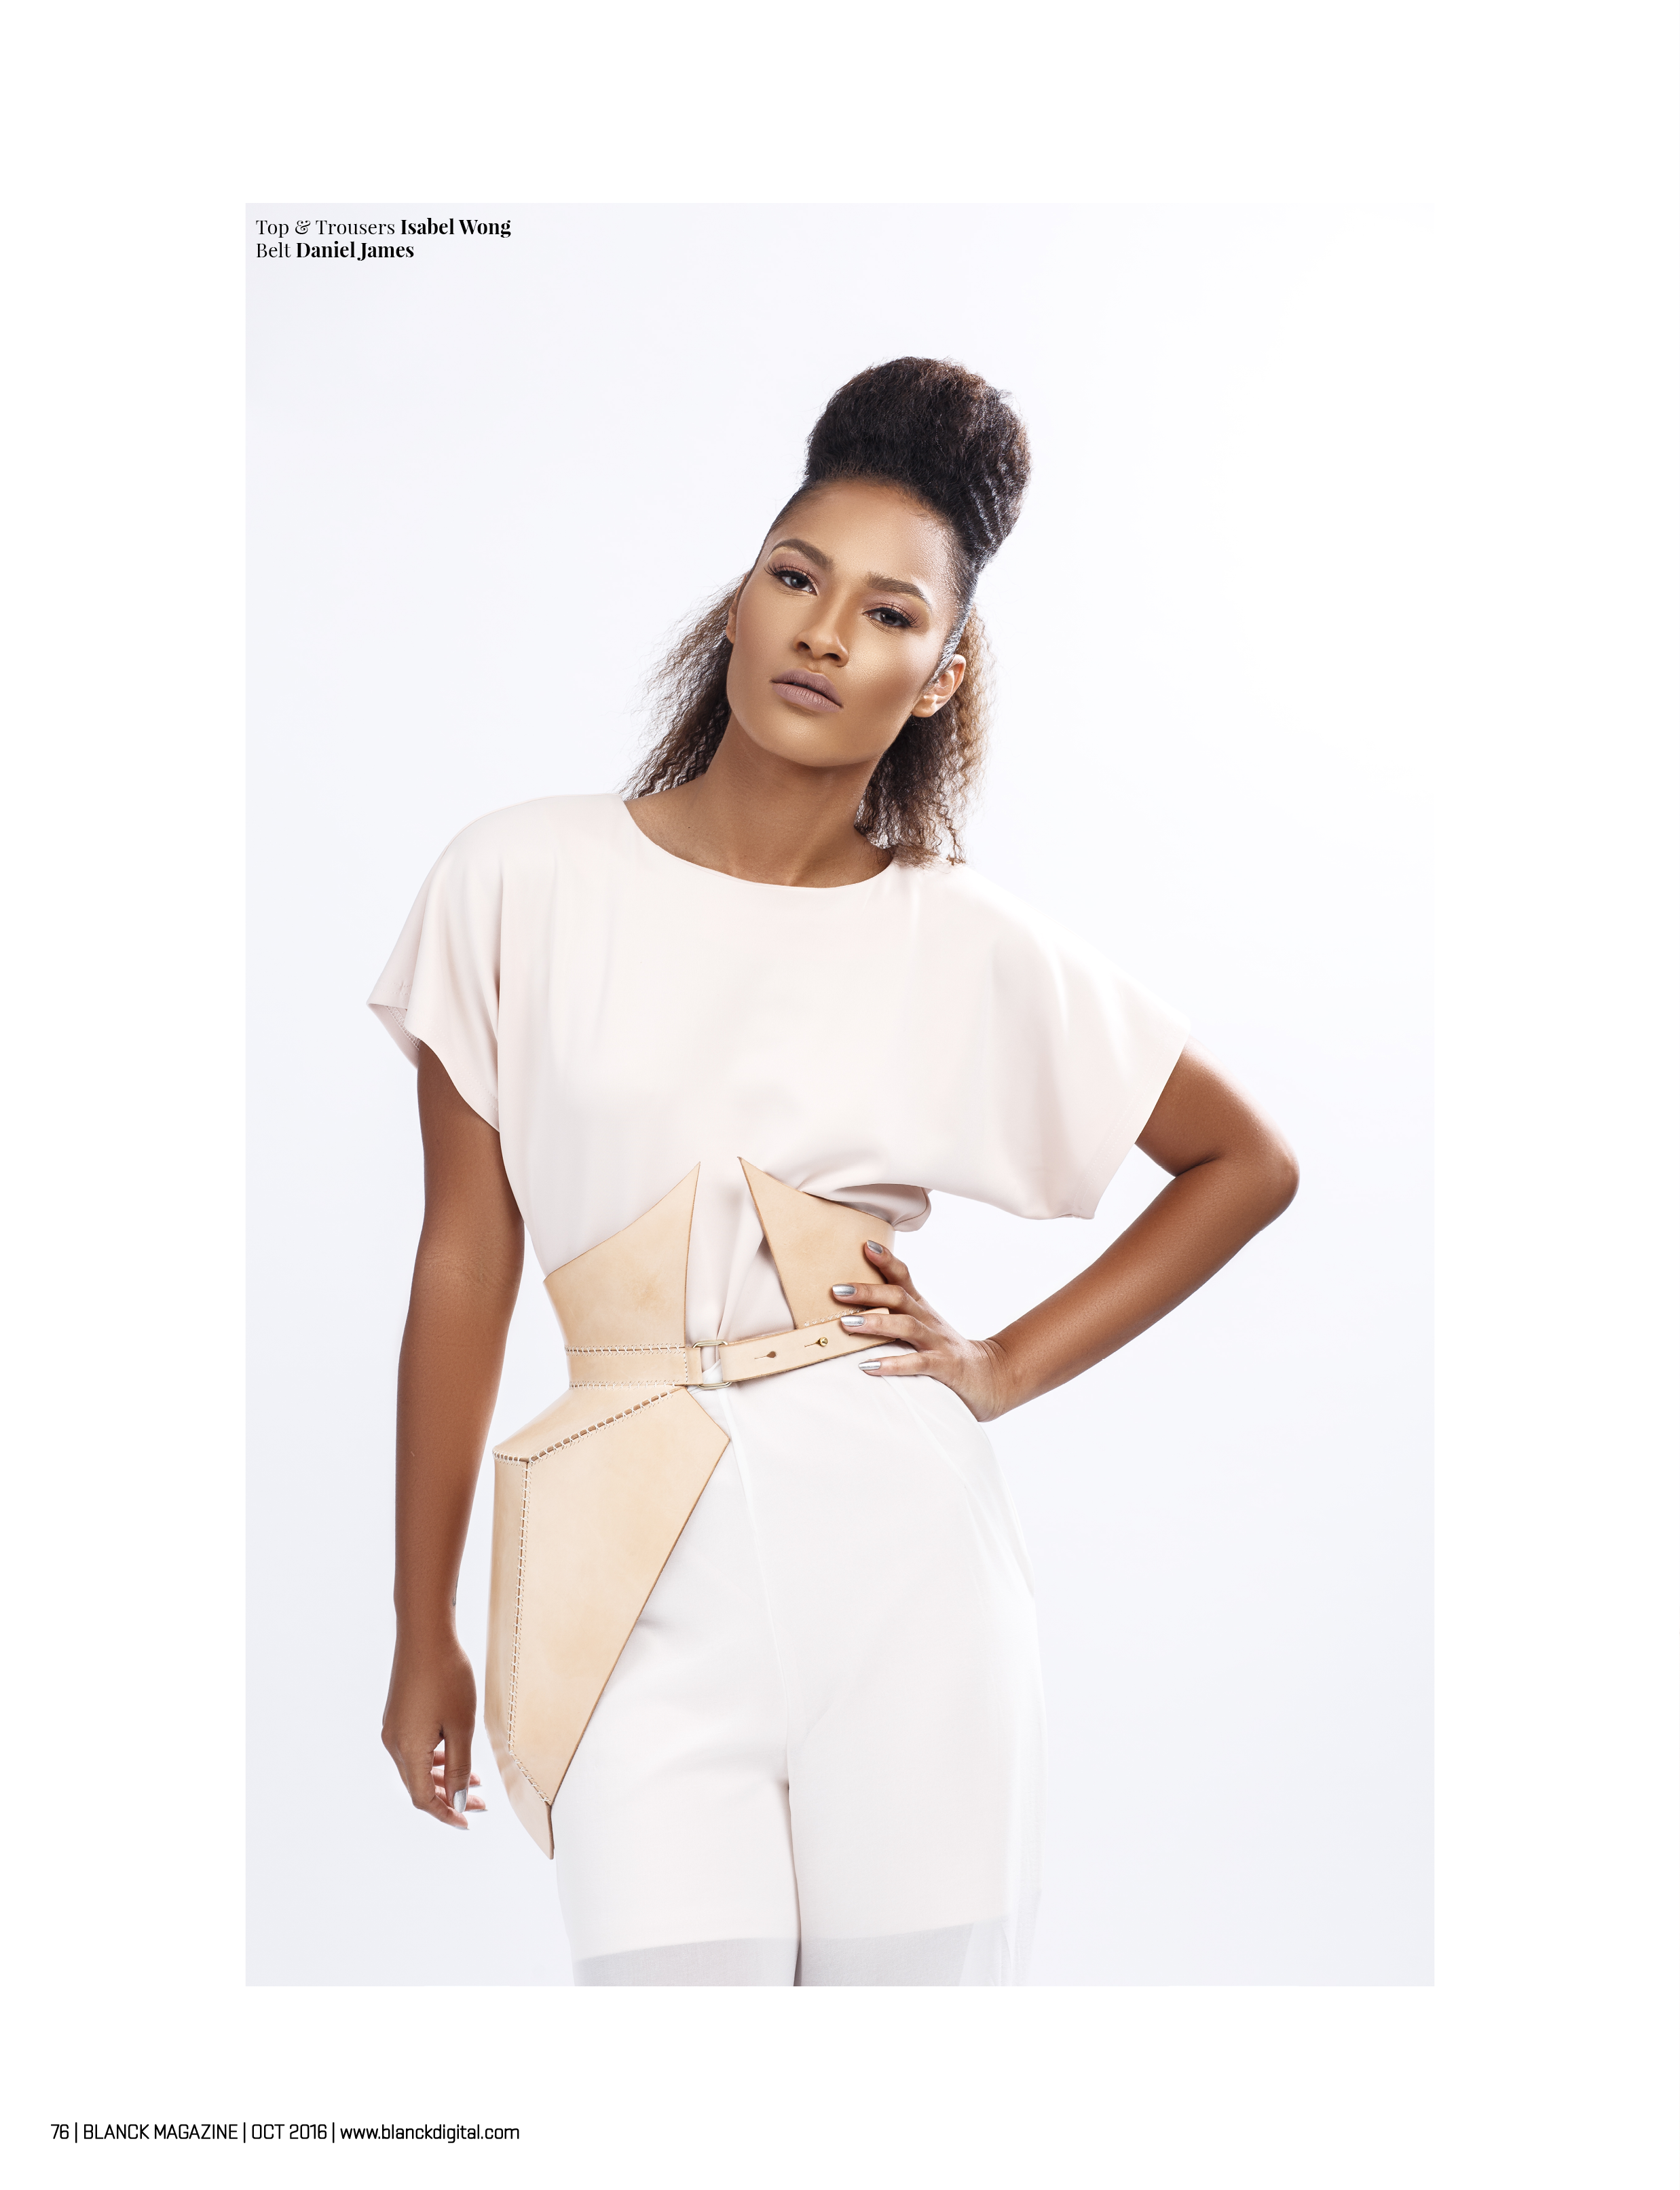 BLANCK Magazine Issue 8 76 Isabel Wong Jumpsuit and sheer trouser.png